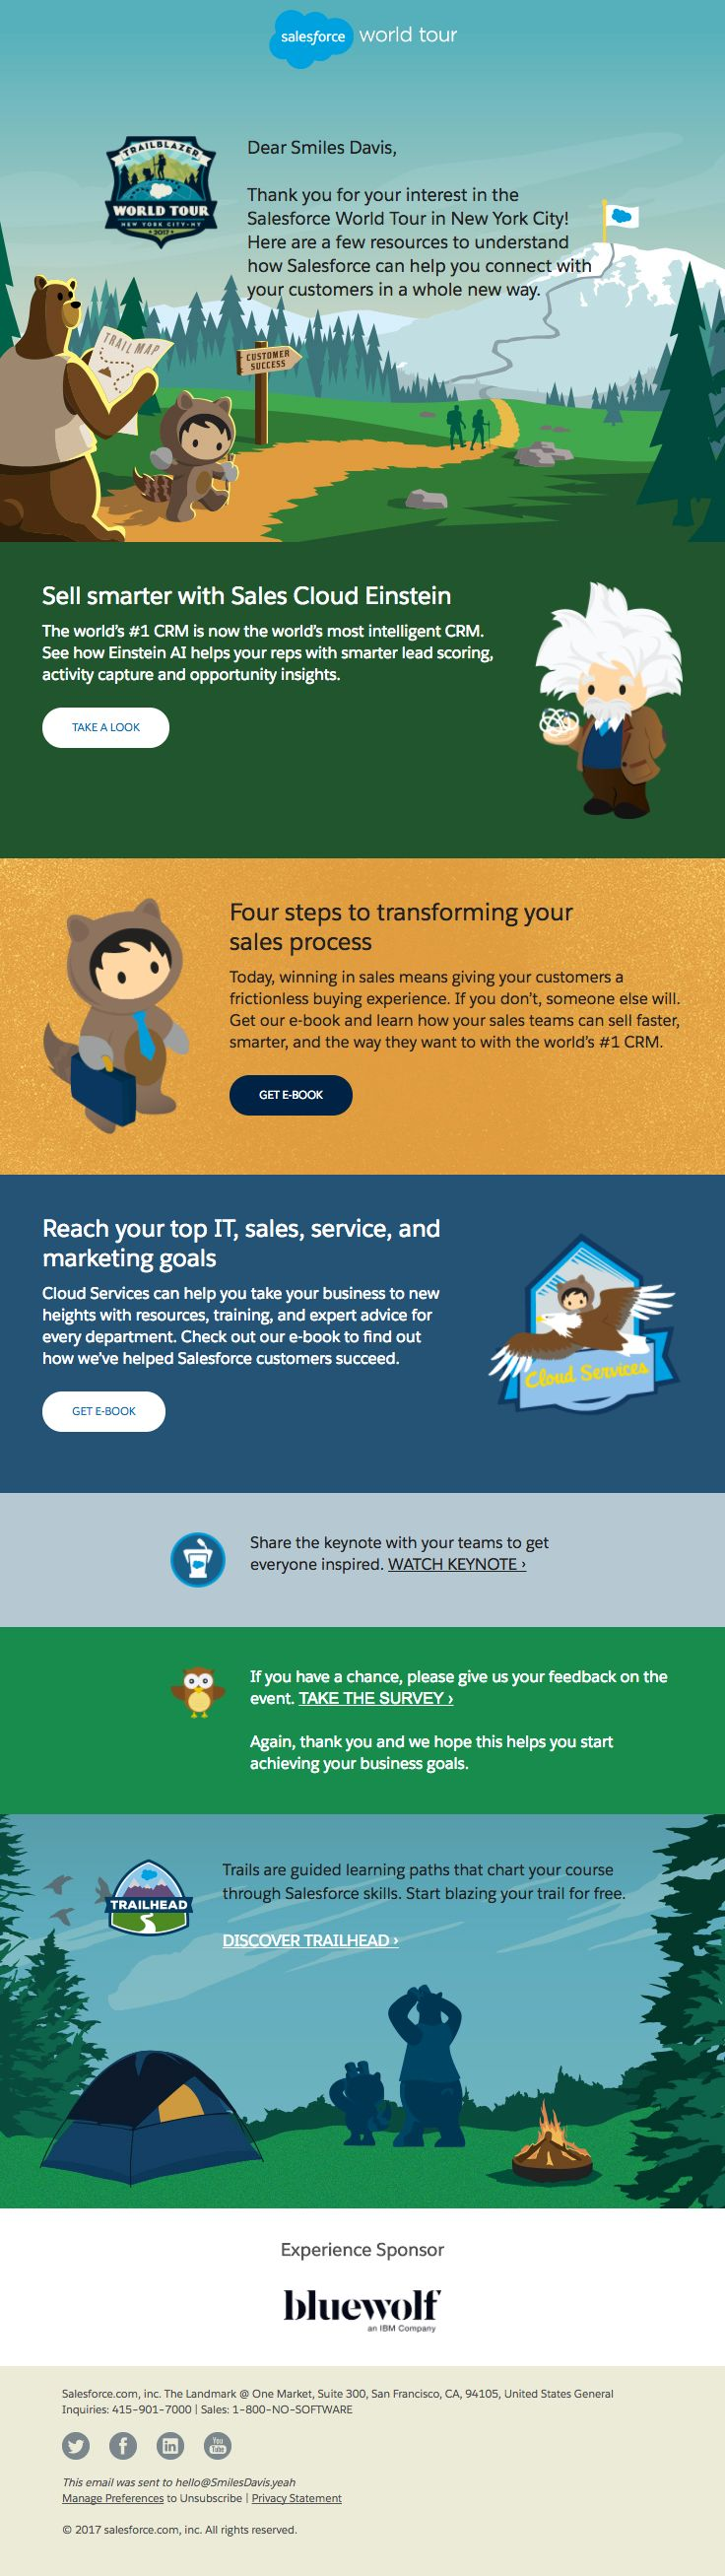 business meeting invitation email template%0A  salesforce sent this email with the subject line  Highlights from the  Salesforce World Tour